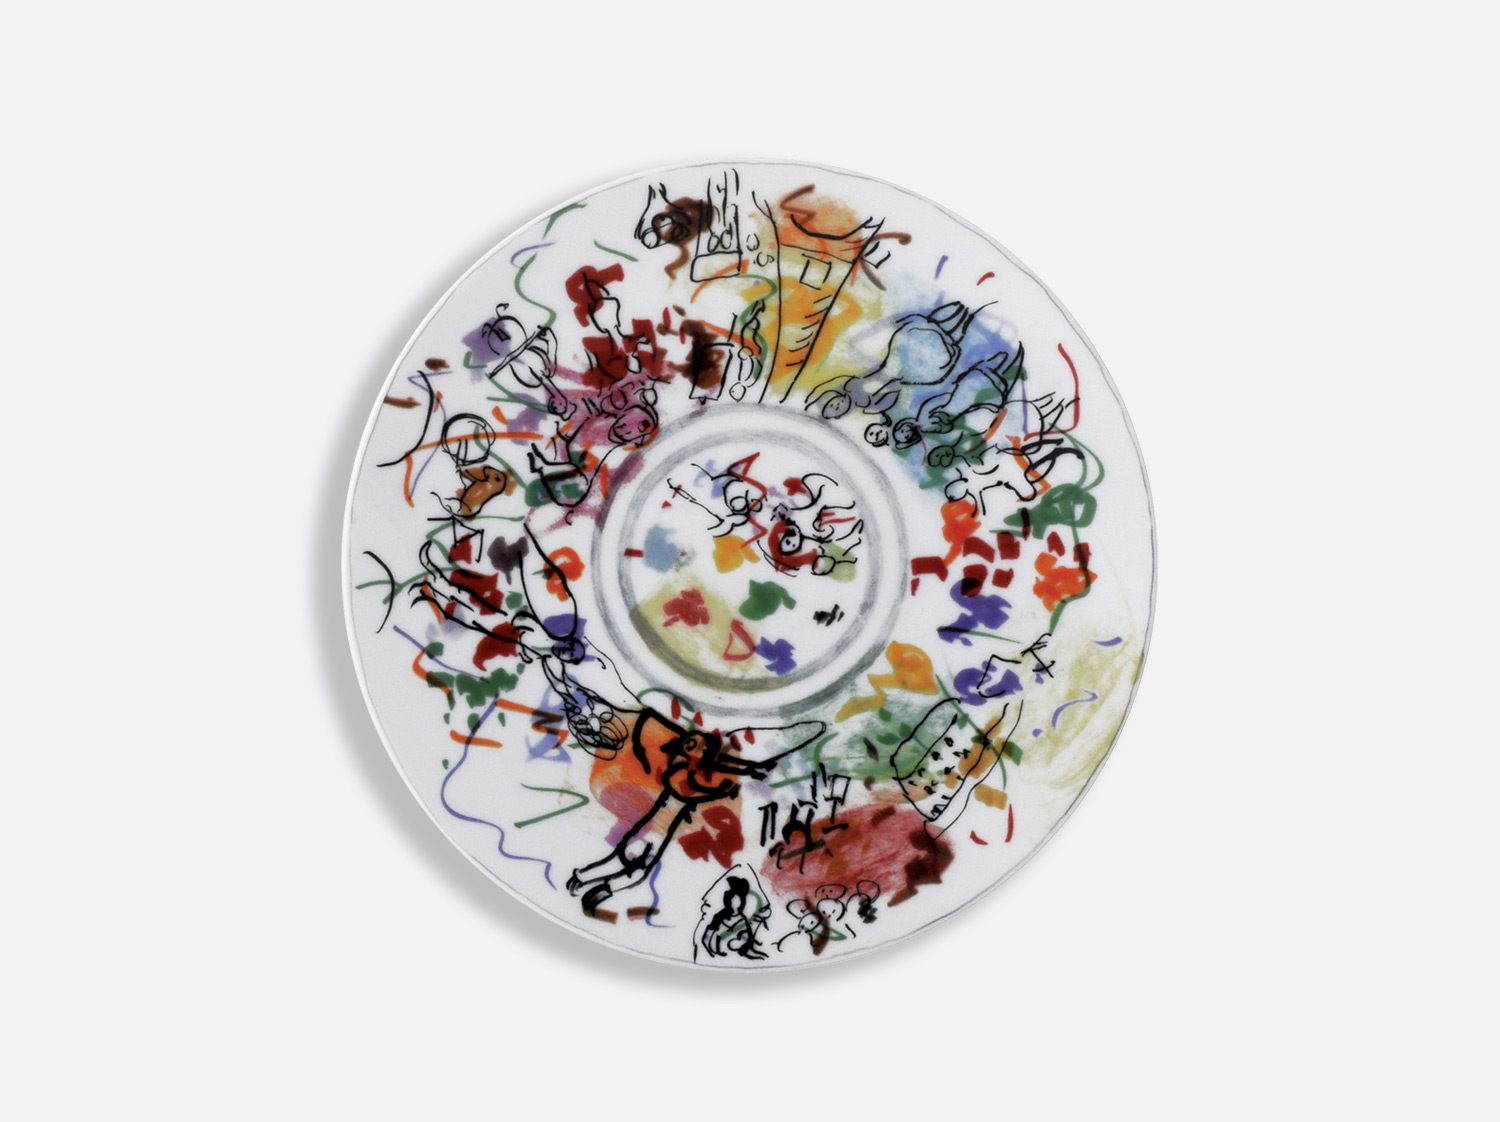 Collectionmarcchagall assiette21opera6 %c2%a9 adagp  paris  2020   chagall